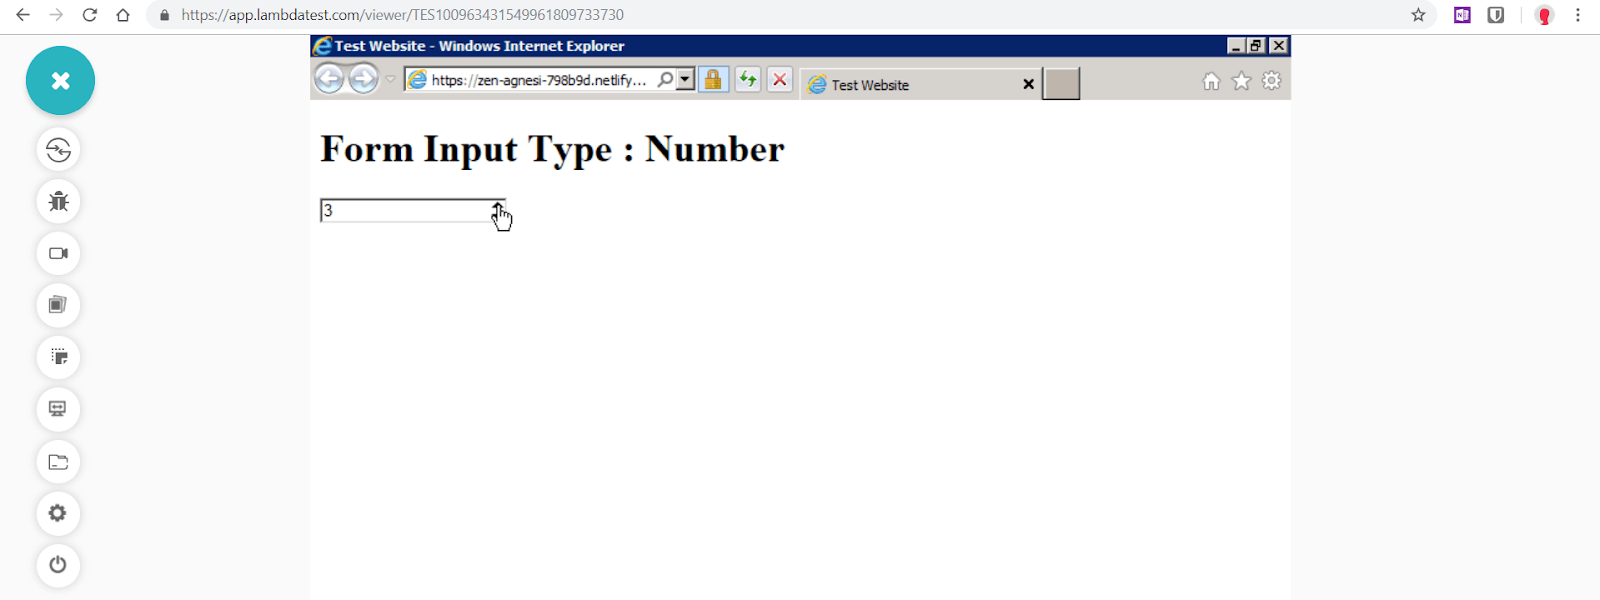 """Number"" is fixed for Internet Explorer 9 by using Number Polyfill"